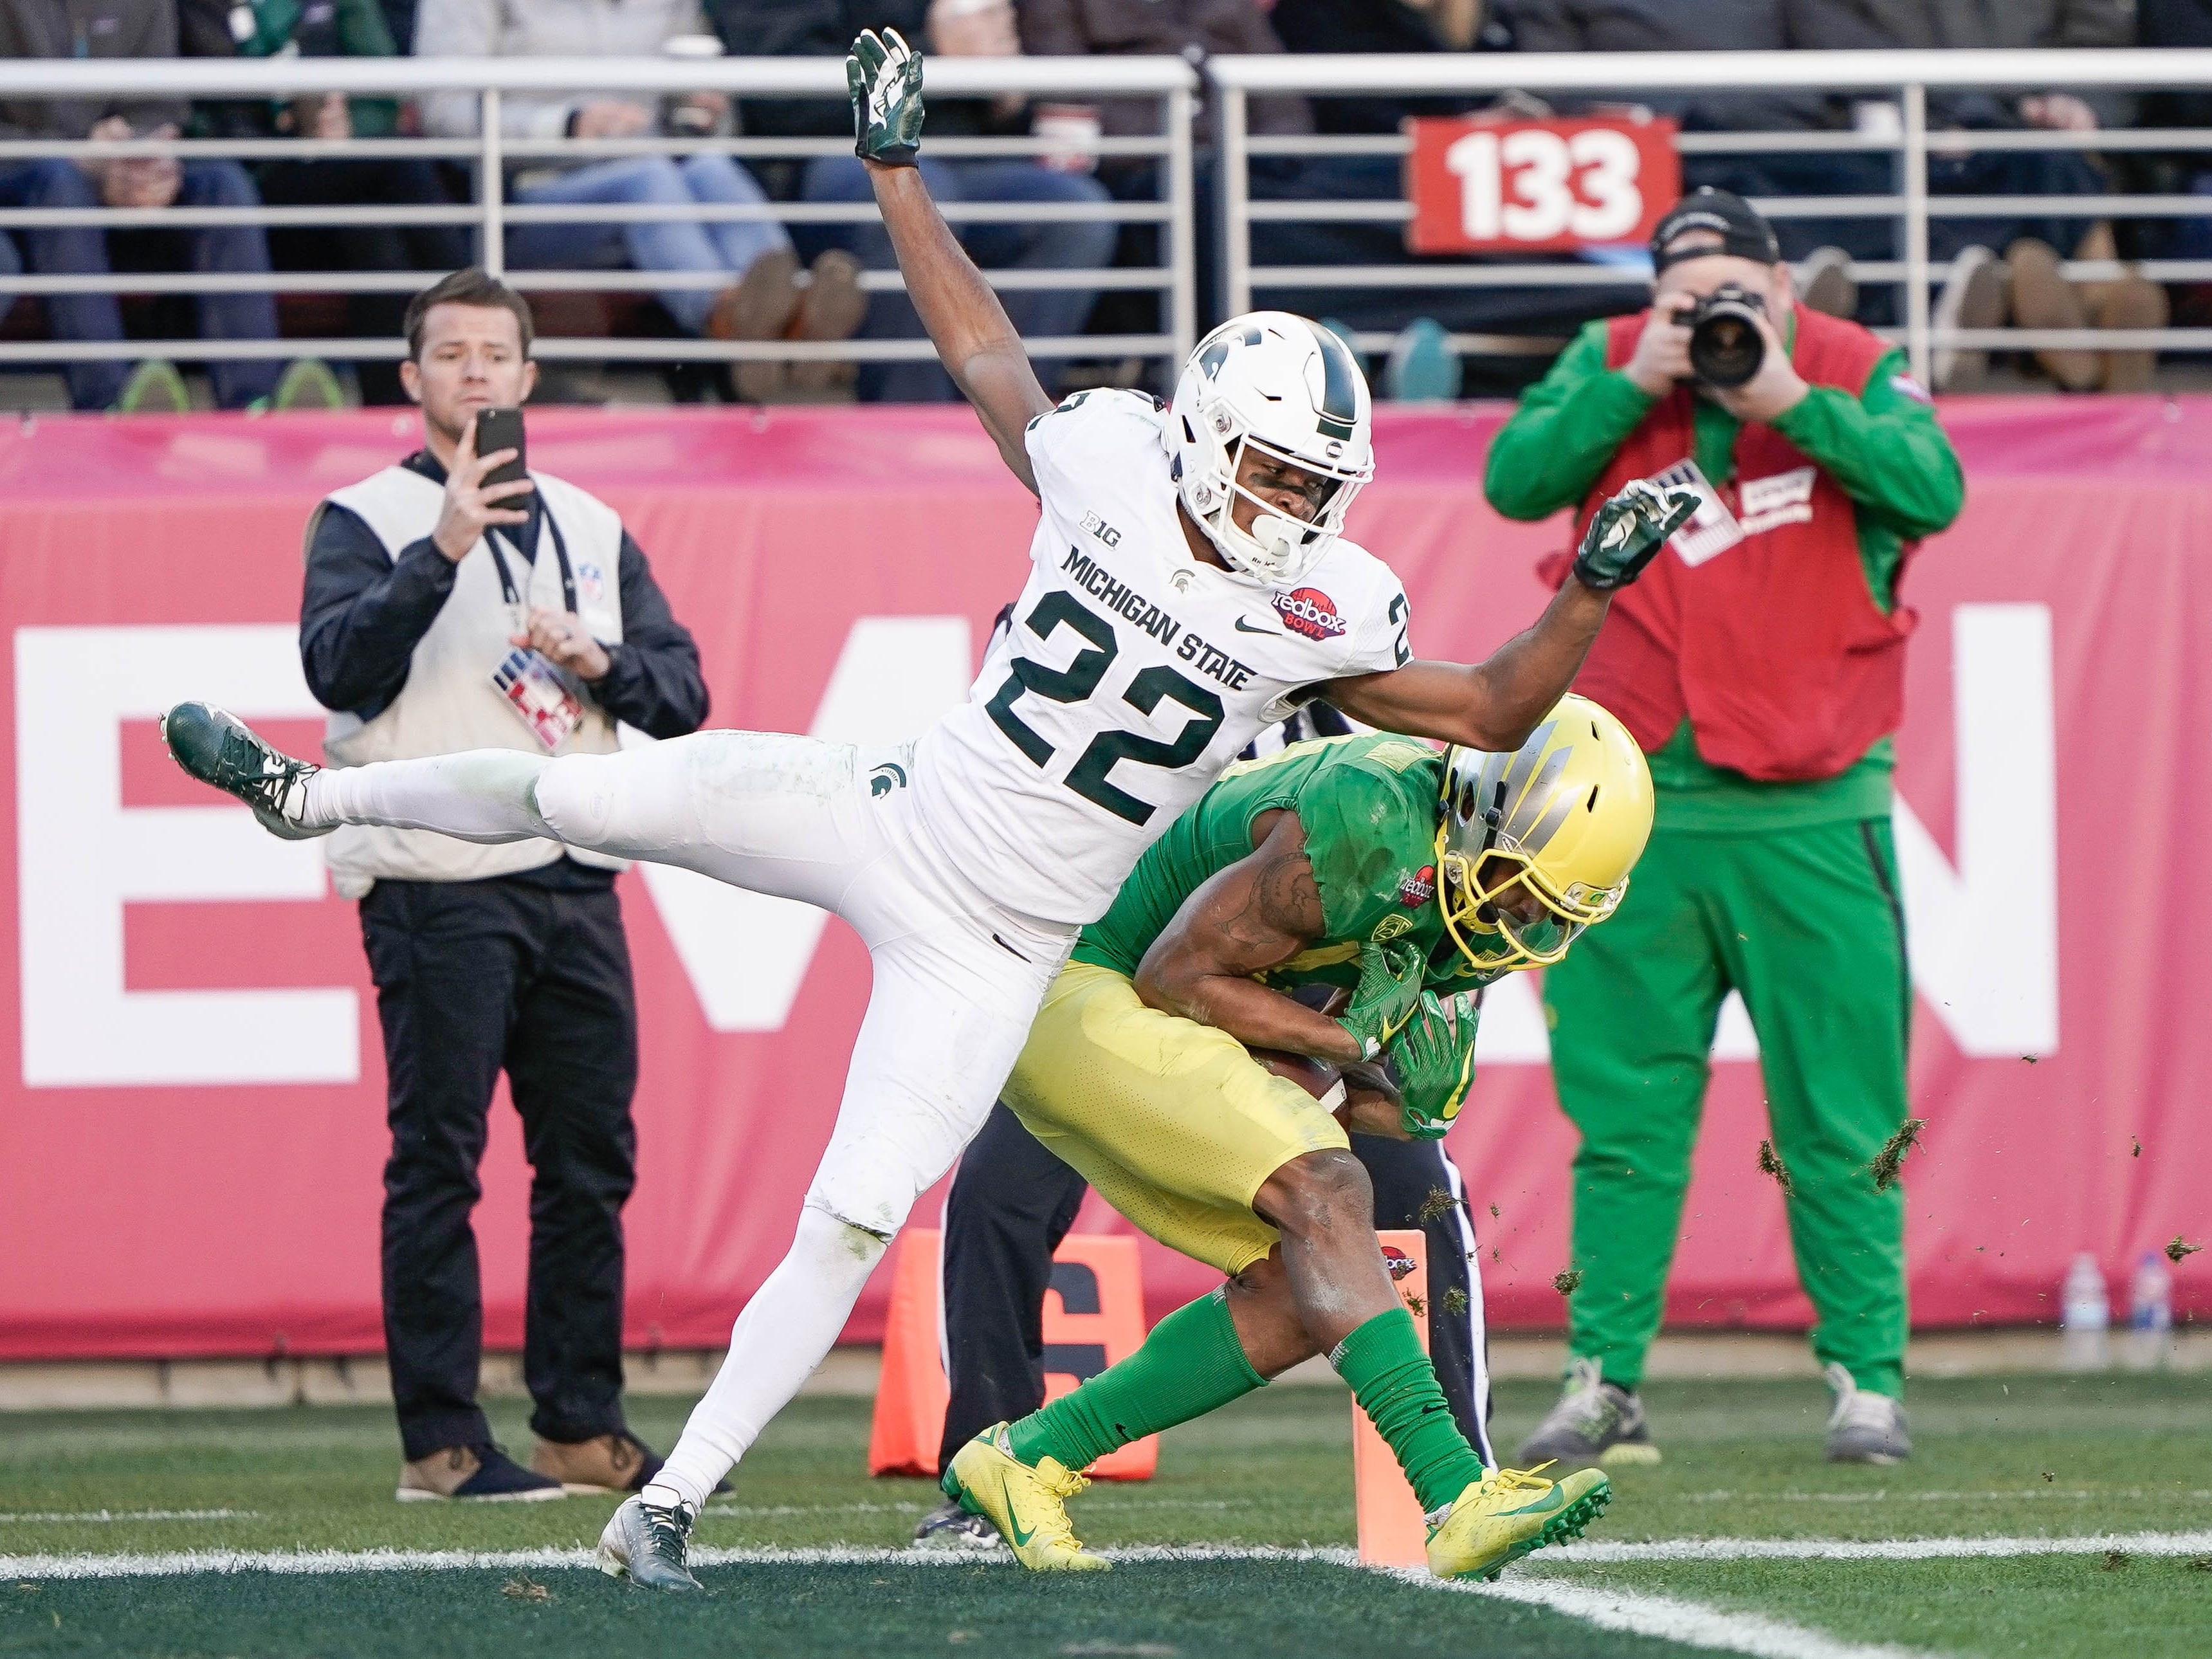 Oregon Ducks wide receiver Dillon Mitchell (13) catches the ball for a touchdown against Michigan State Spartans cornerback Josiah Scott (22) during the fourth quarter at Levi's Stadium.